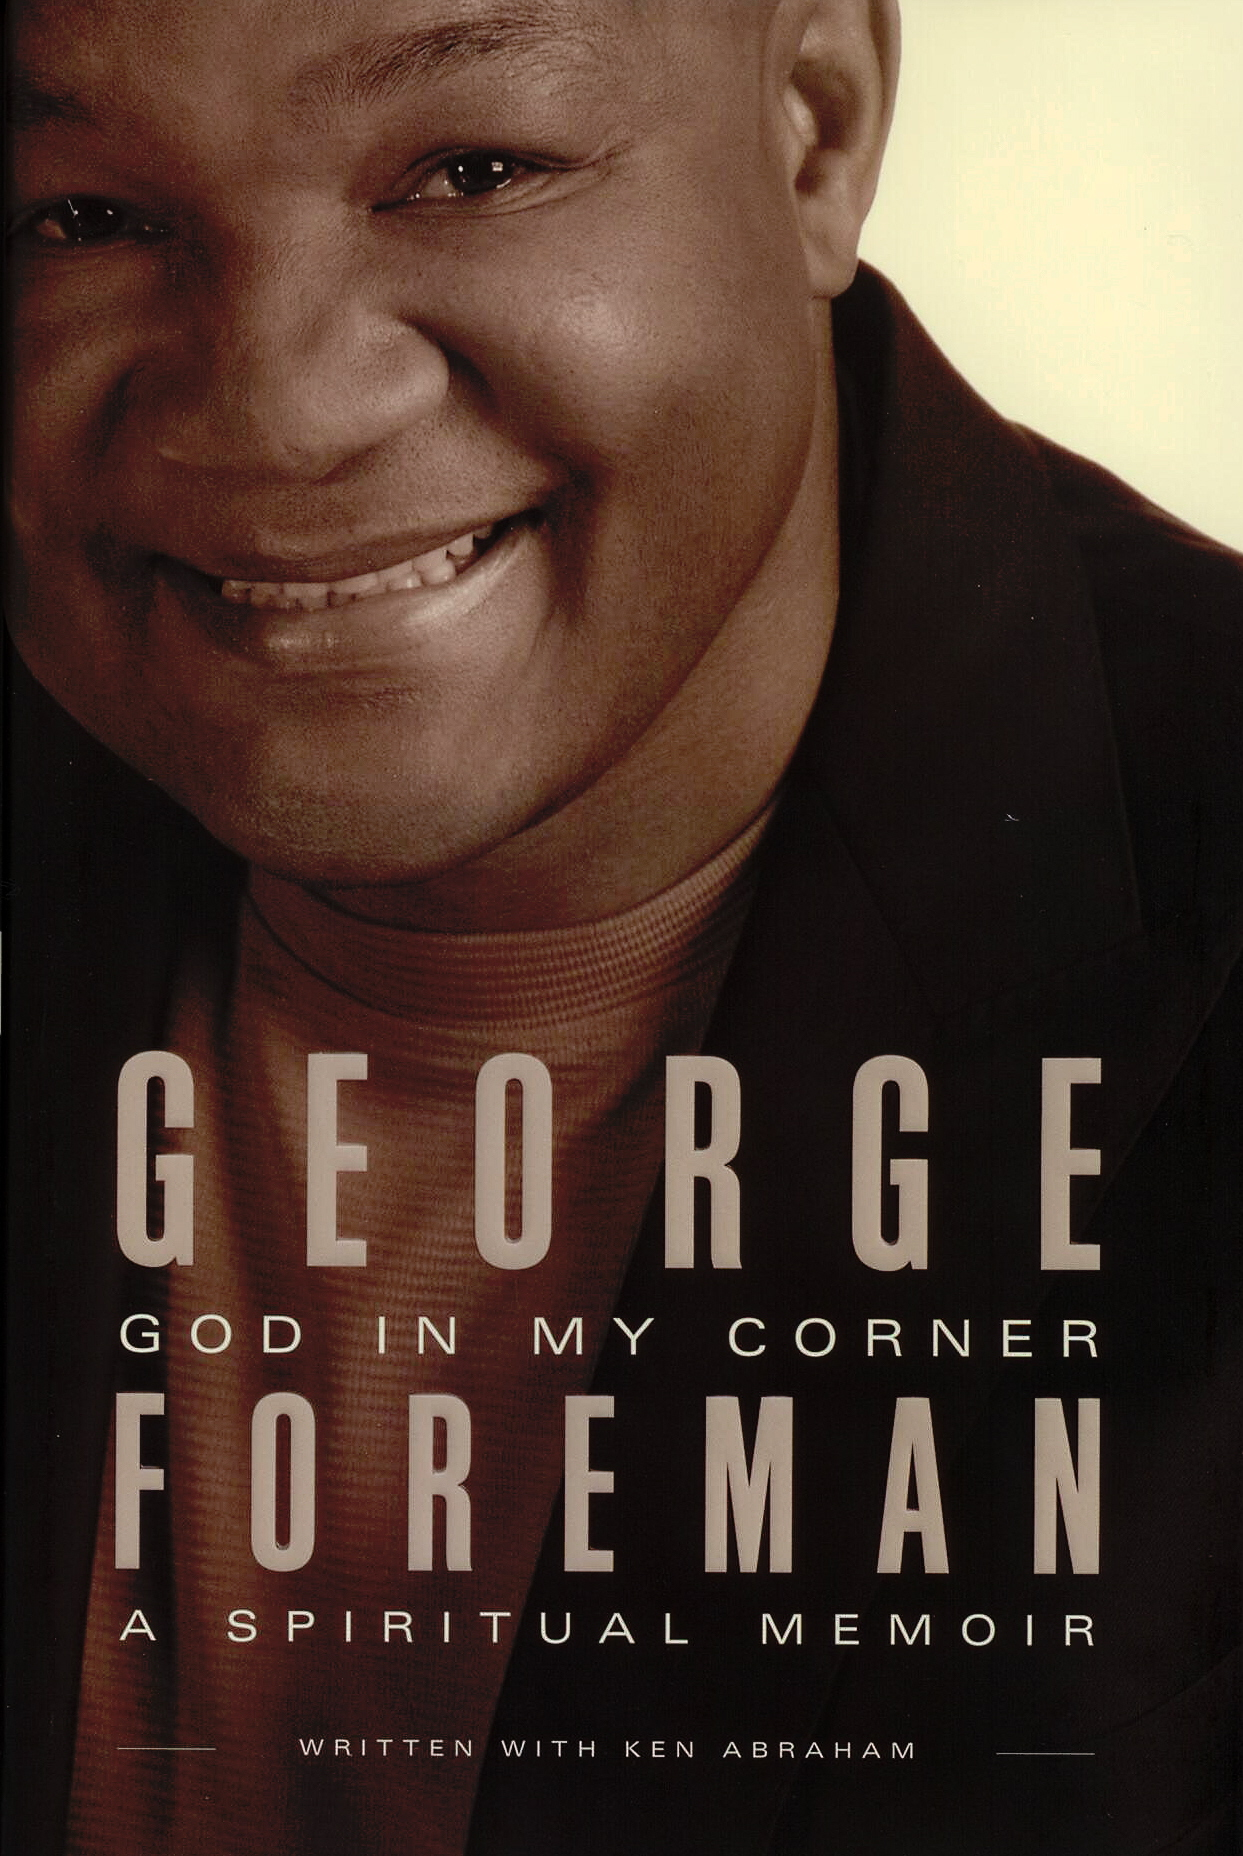 God In My Corner by George Foreman